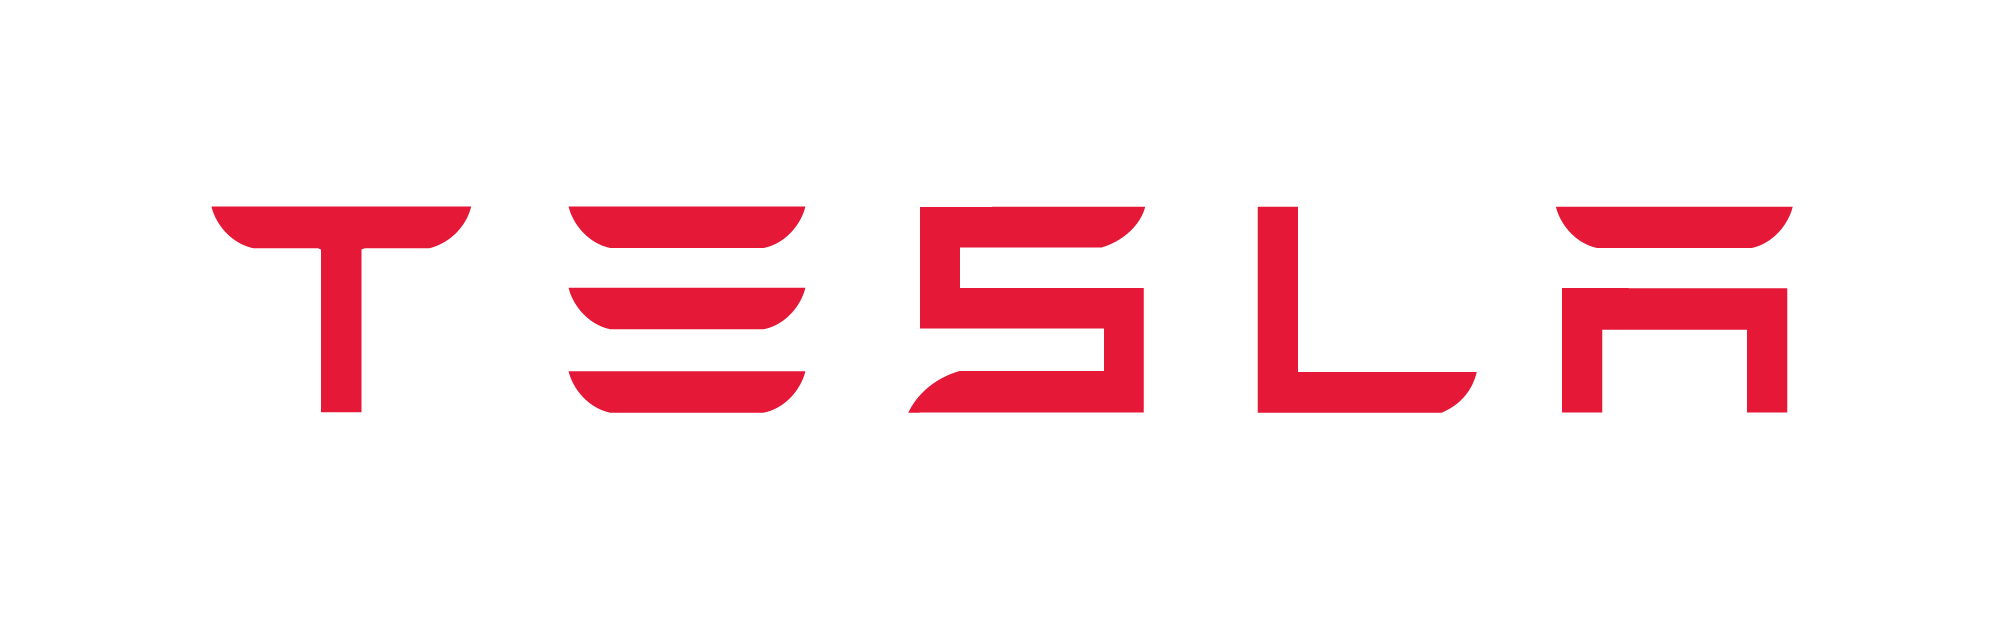 Tesla Wordmark Red.png